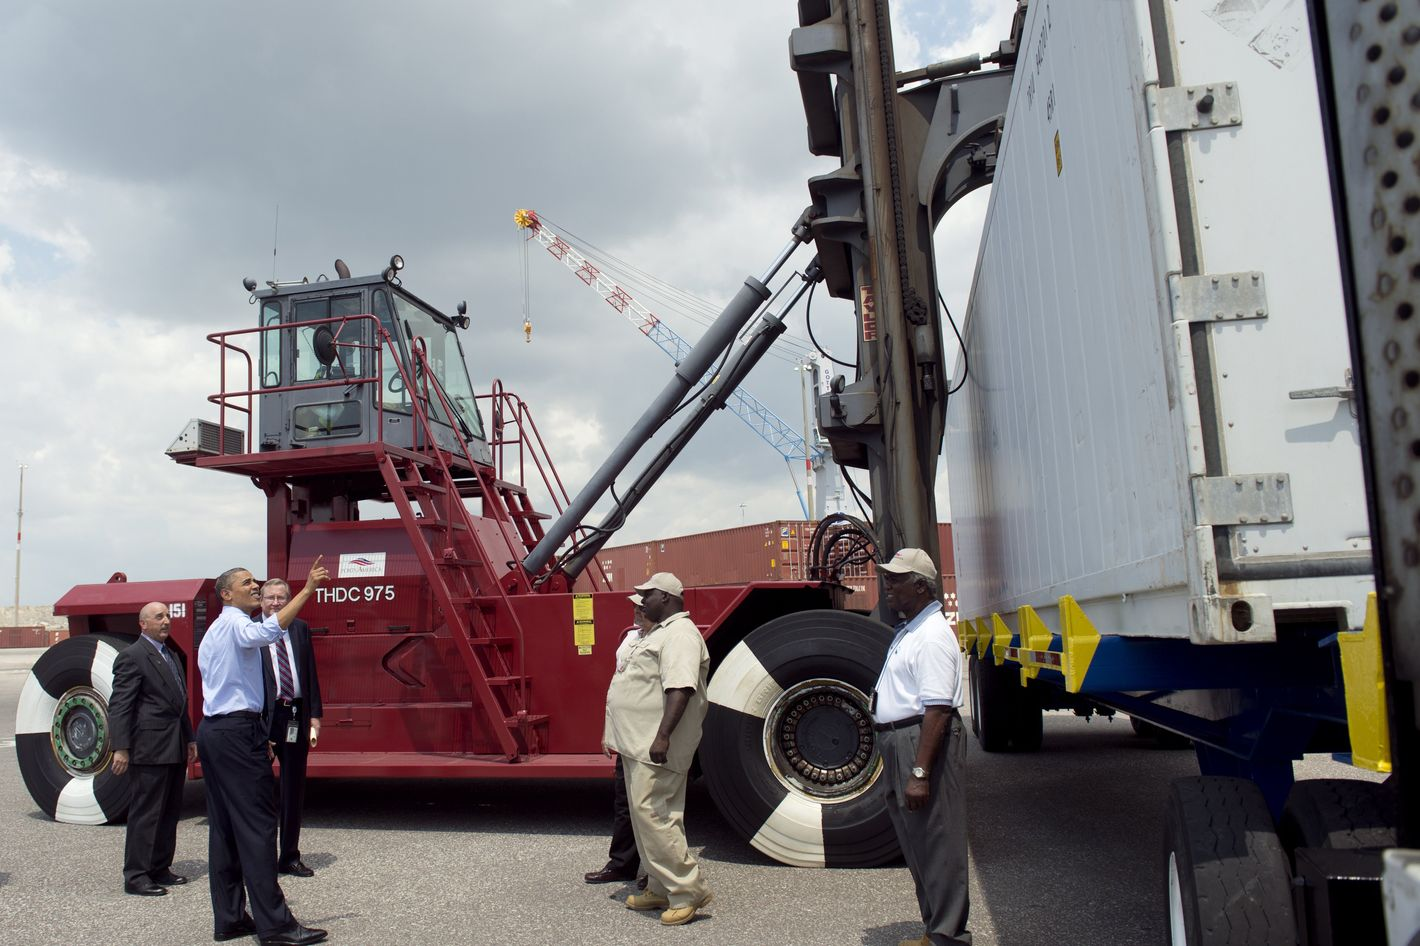 US President Barack Obama (2nd L) looks at a crane that lifts containers as he tours the Port of Tampa prior to speaking on trade policies with Latin America in Tampa, Florida, April 13, 2012. Later today, Obama travels to the Summit of the Americas in Cartagena, Colombia.